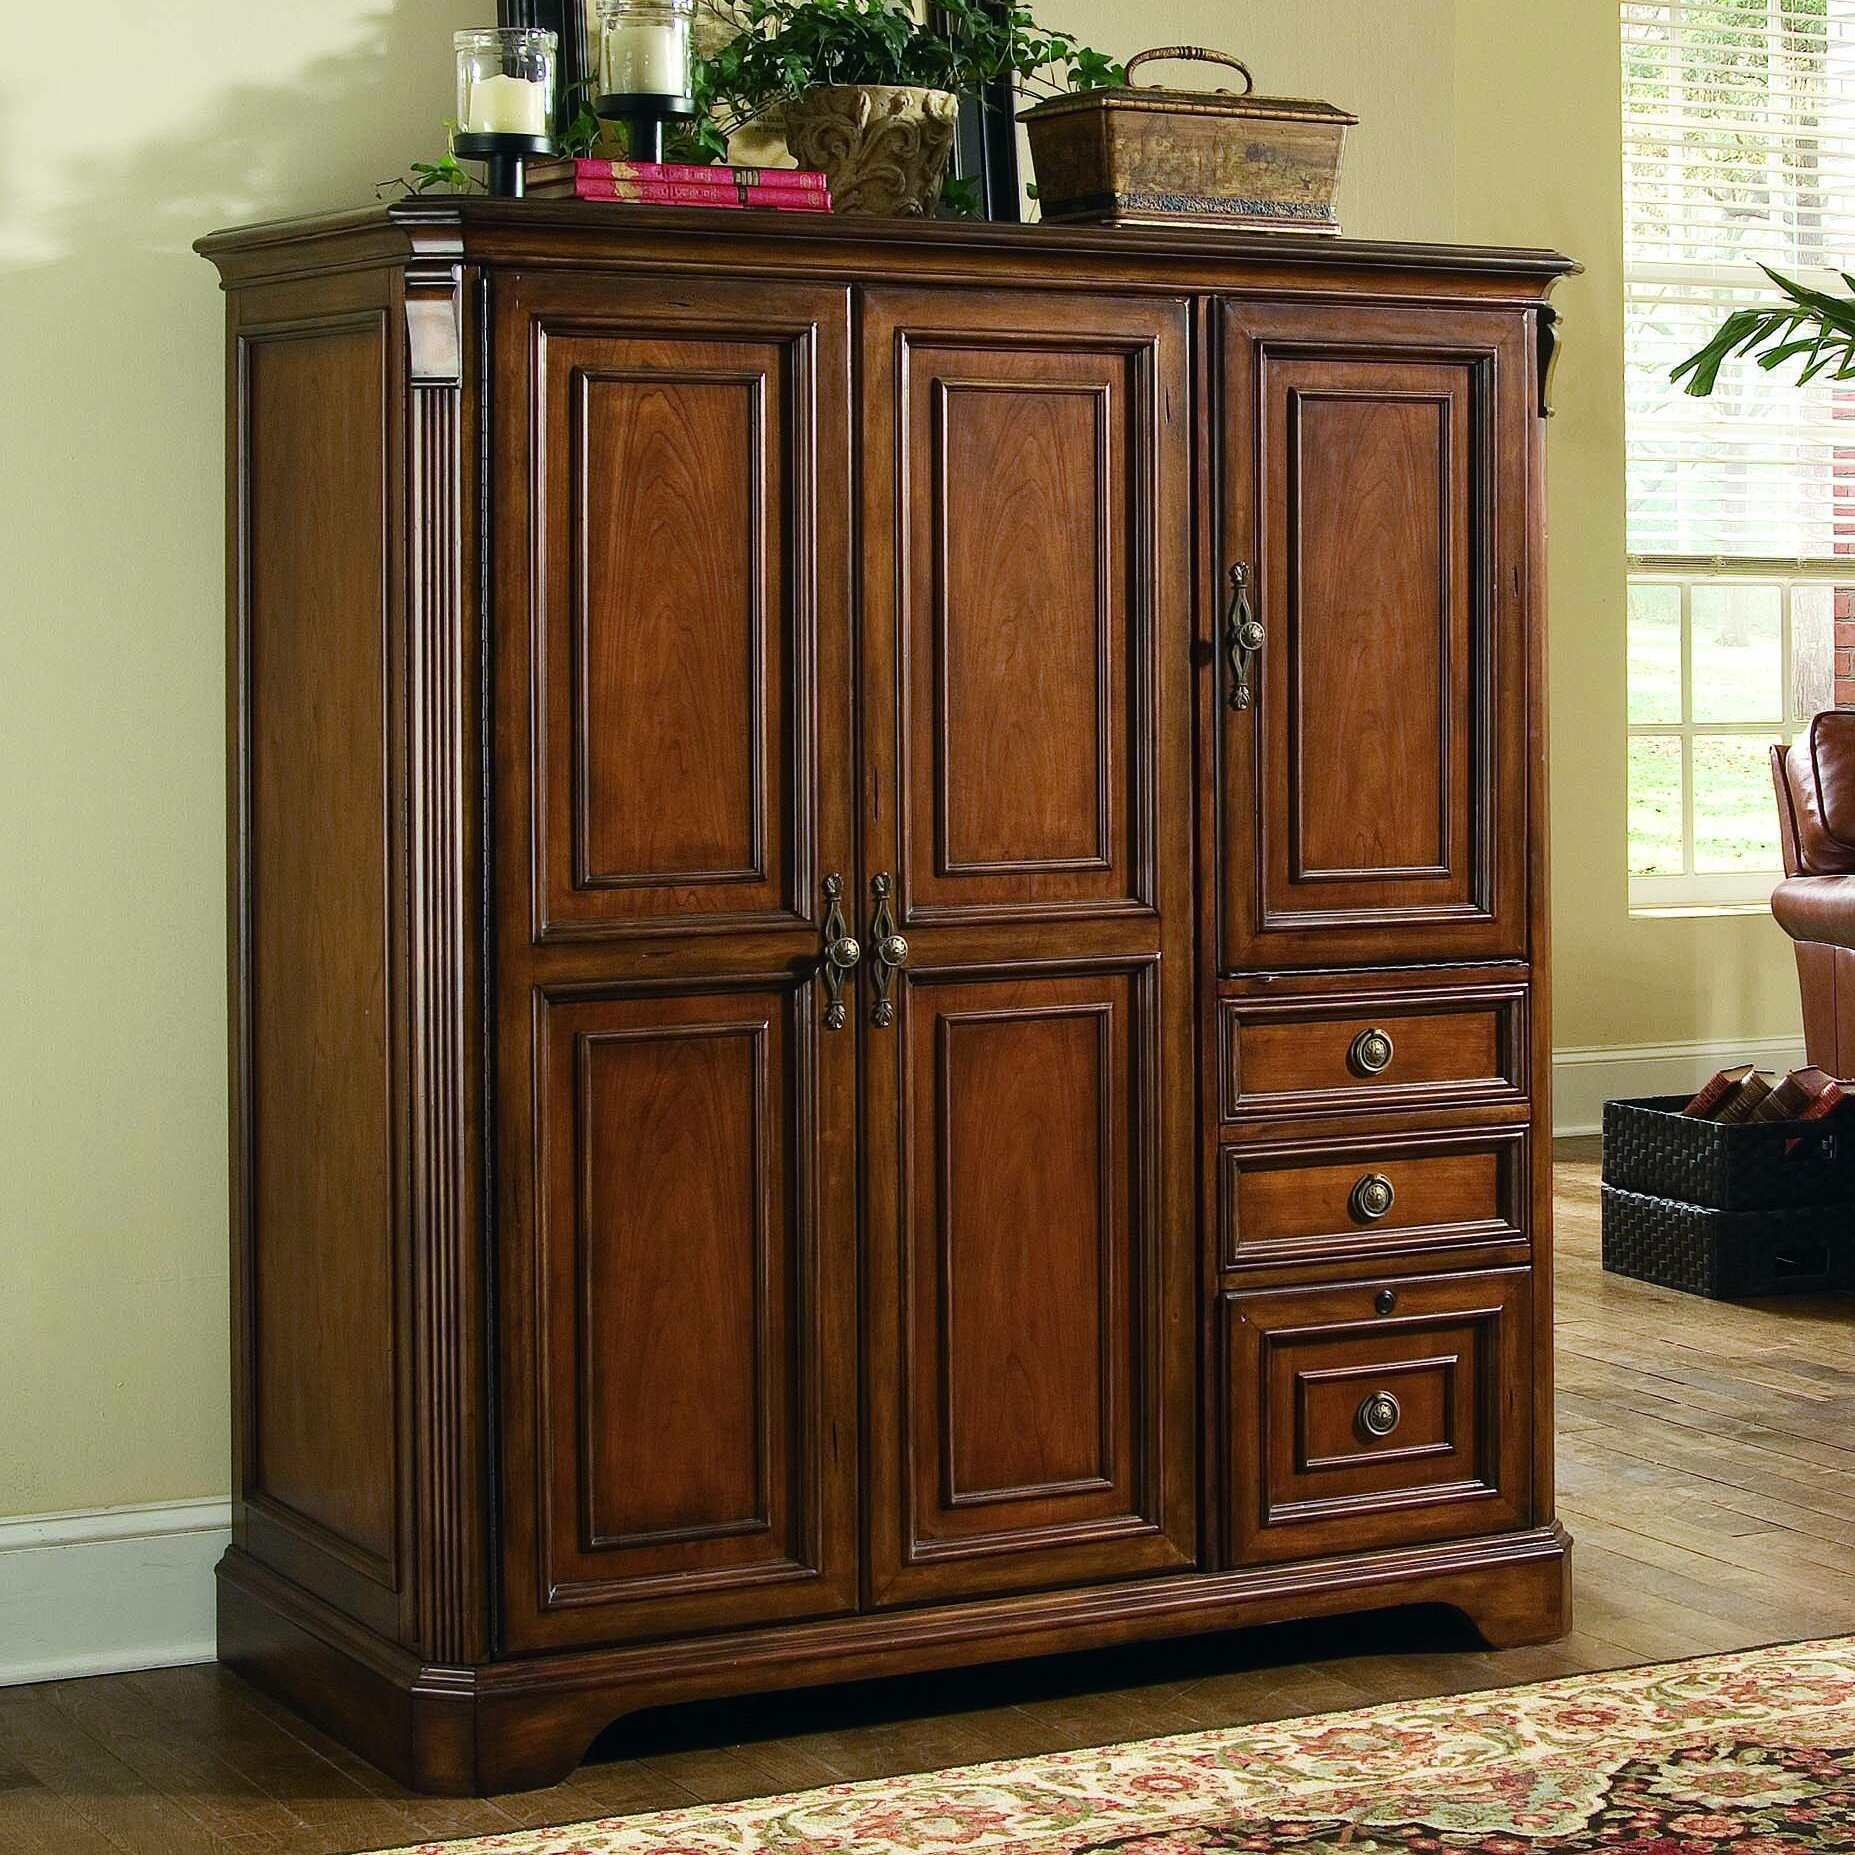 Hooker Furniture Brookhaven Armoire Desk & Reviews | Wayfair